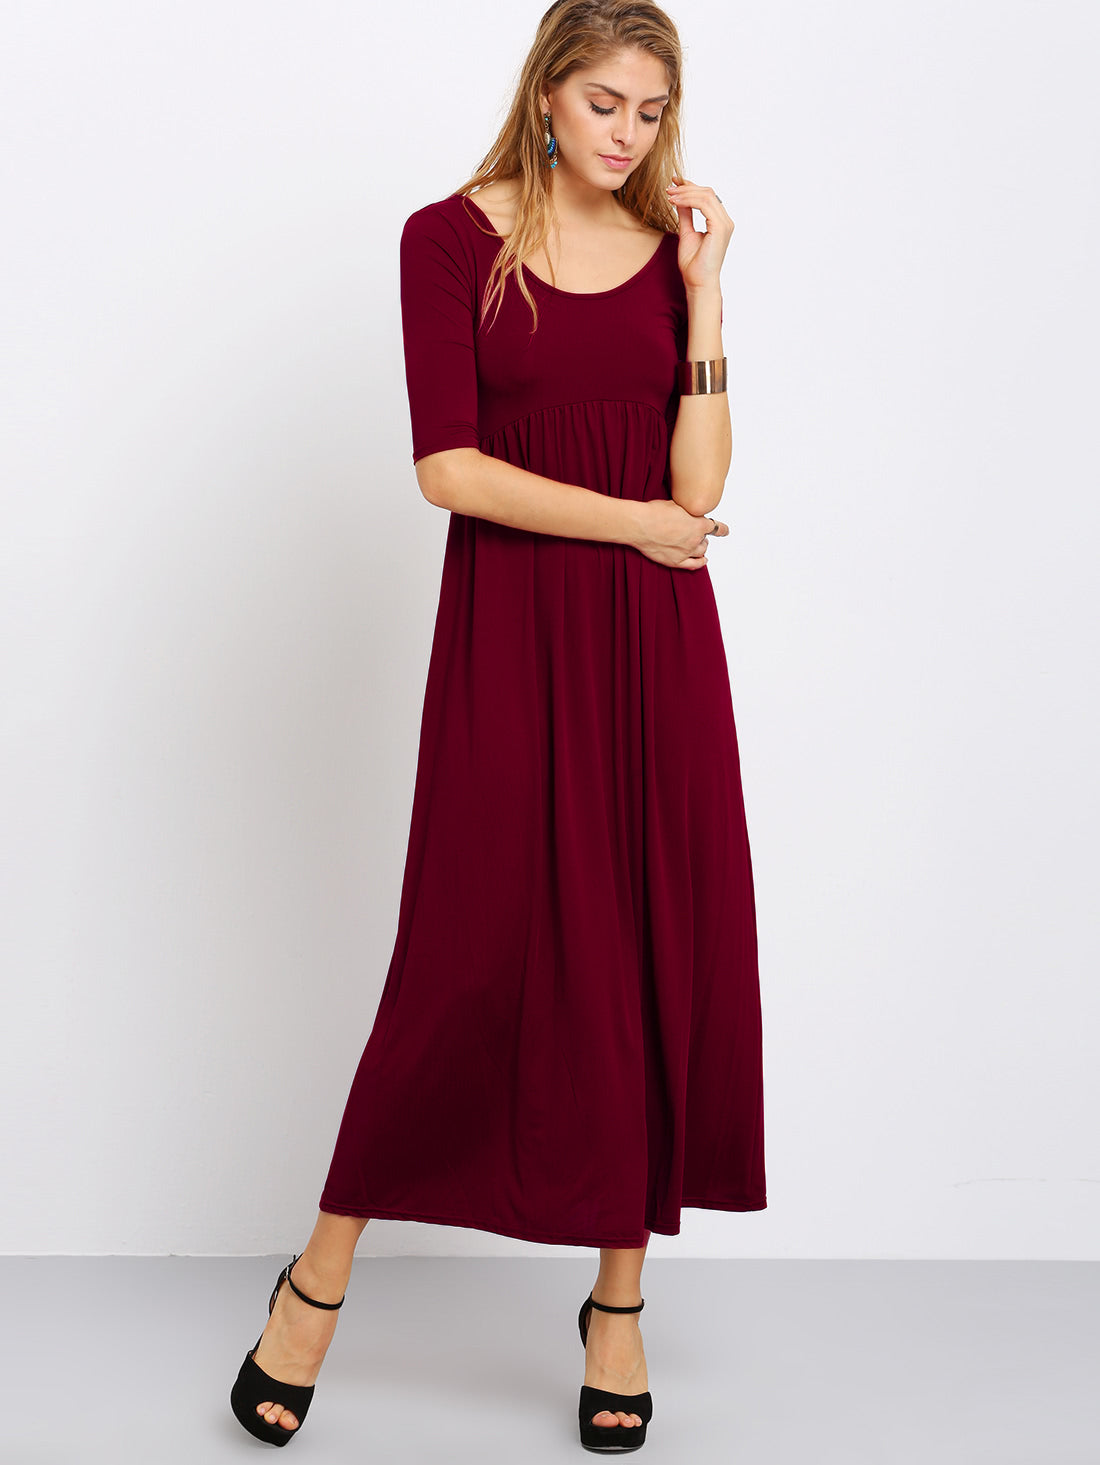 Scoop Neck Cut Out Back Maxi Dress